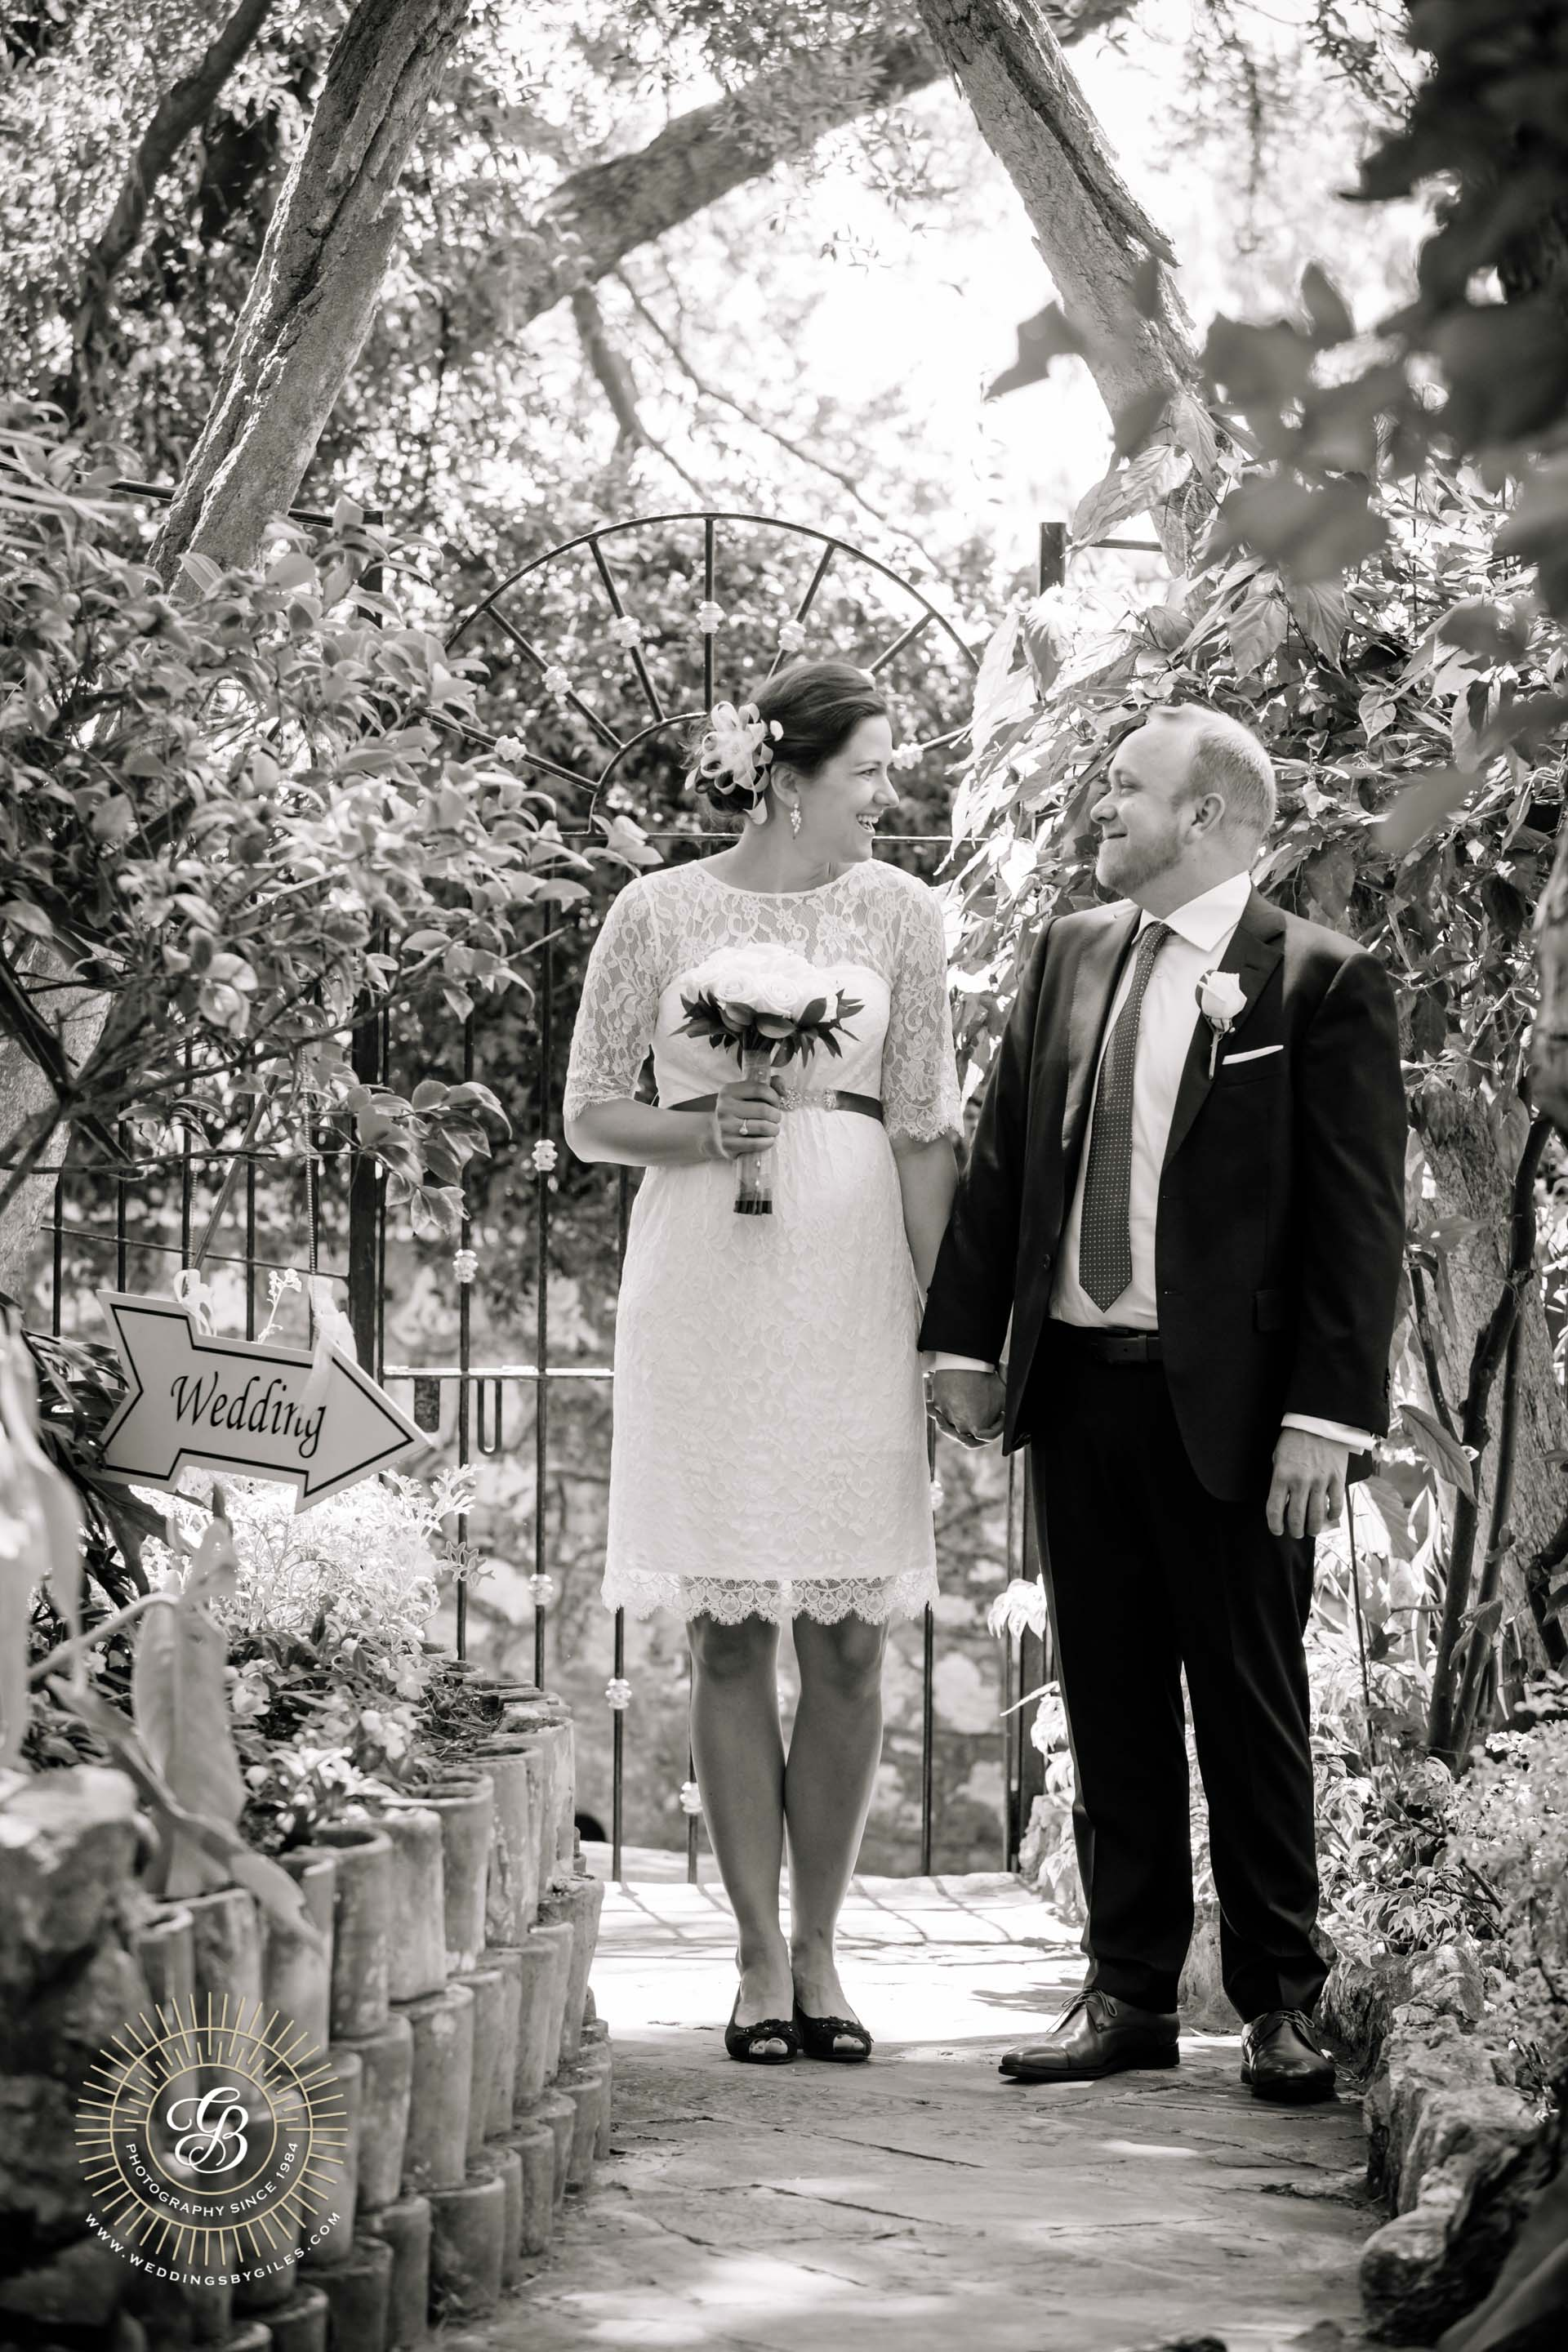 Bride and groom arrive at the garden